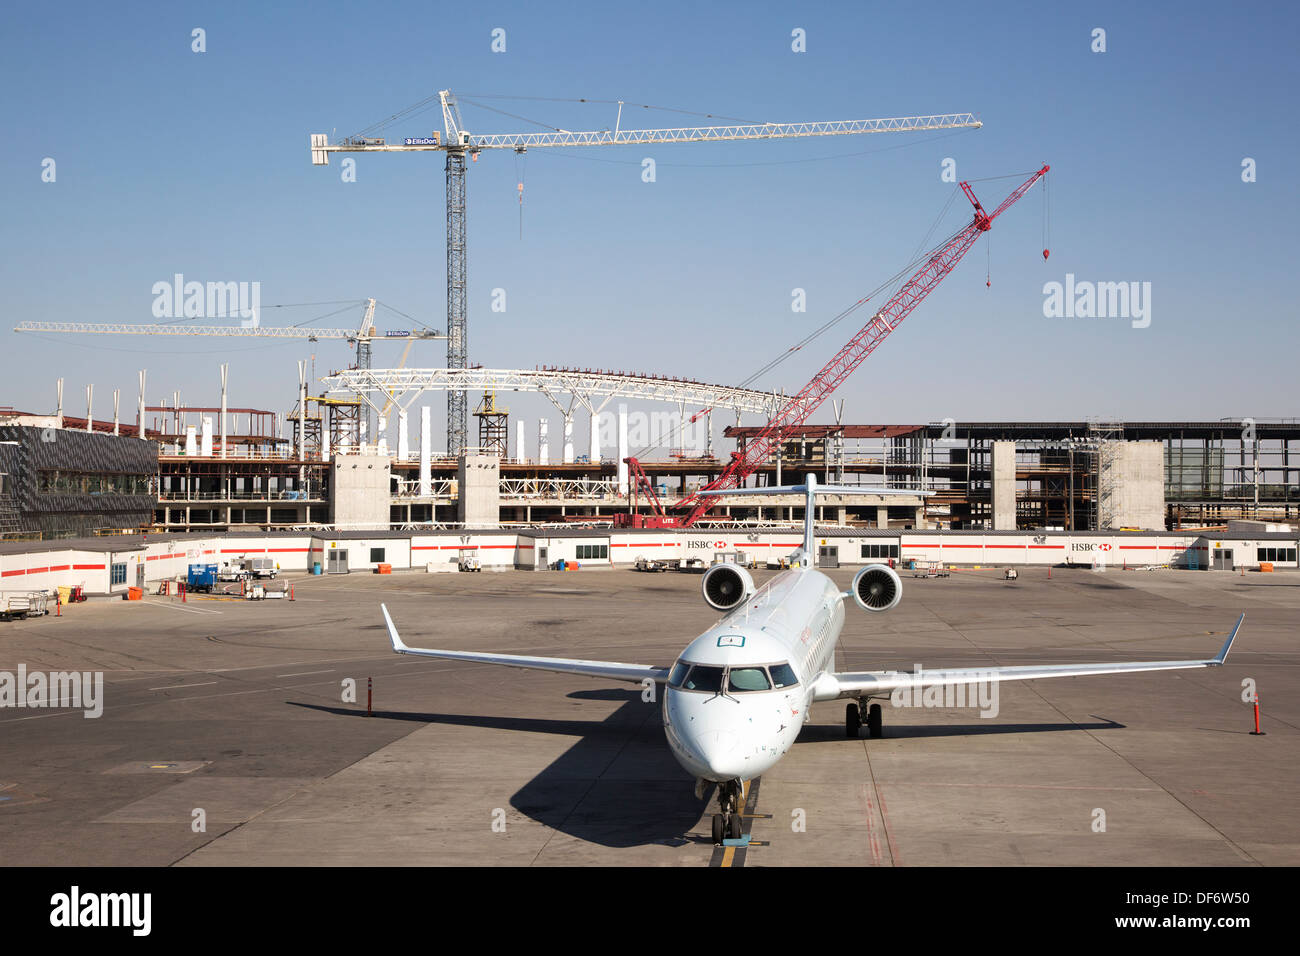 Airport construction - Stock Image